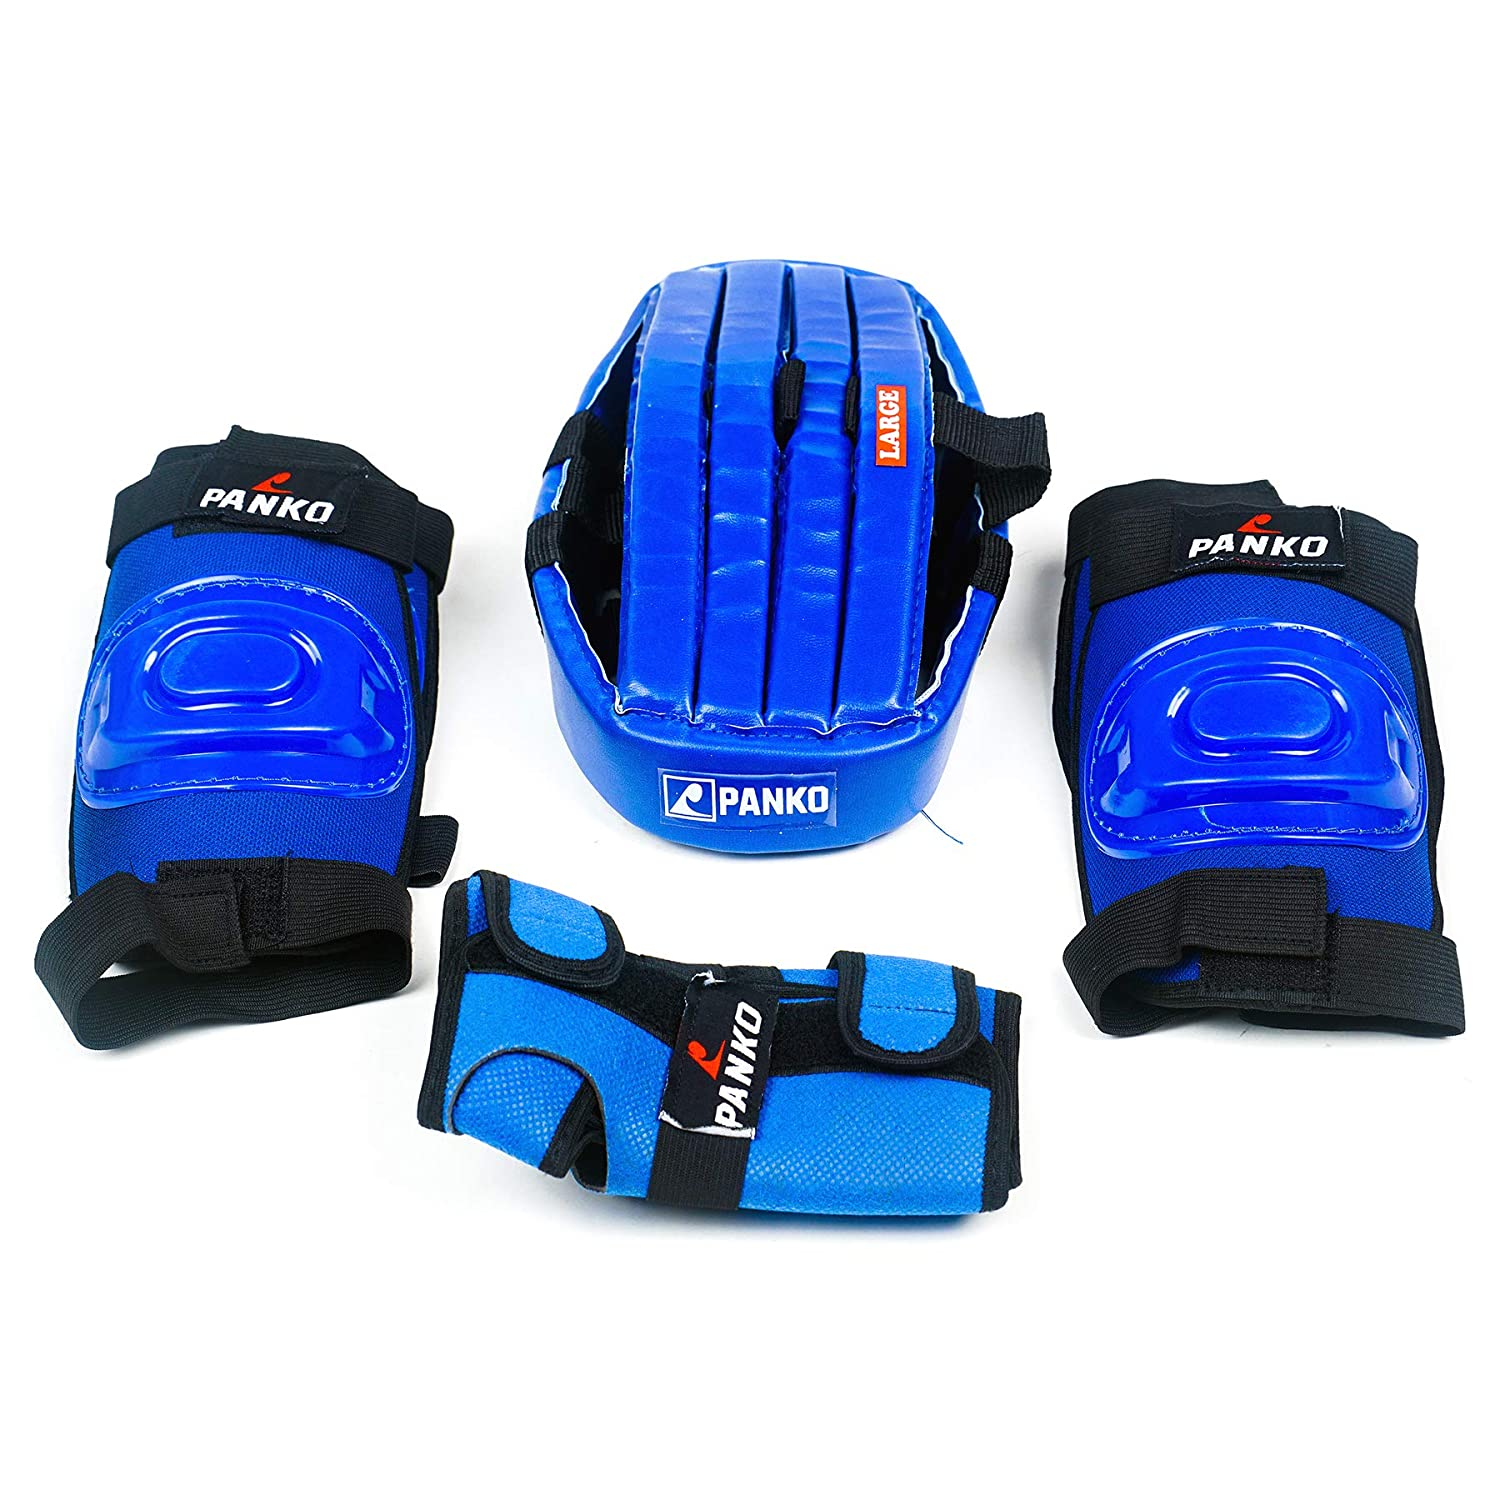 Skating Protective Set - Large Size - Best Quality